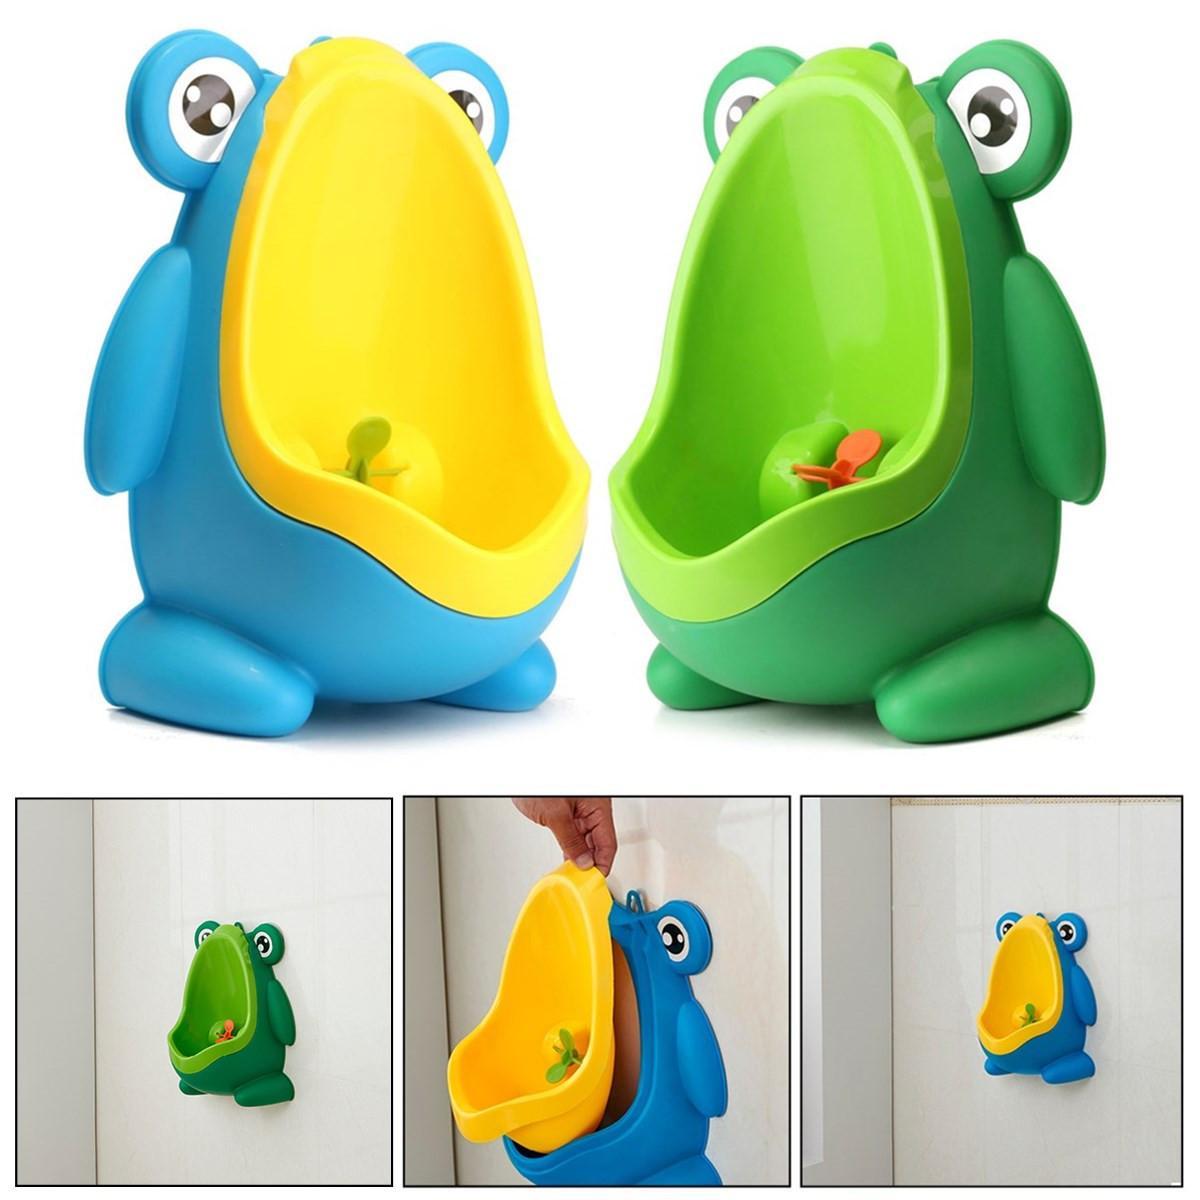 For 0-6 Yeas Old Baby 15x20.5x29cm Potty Toilet Fiog Shaped Children Potty Toilet Training Urinal Kids Boys Pee Trainer Bathroom